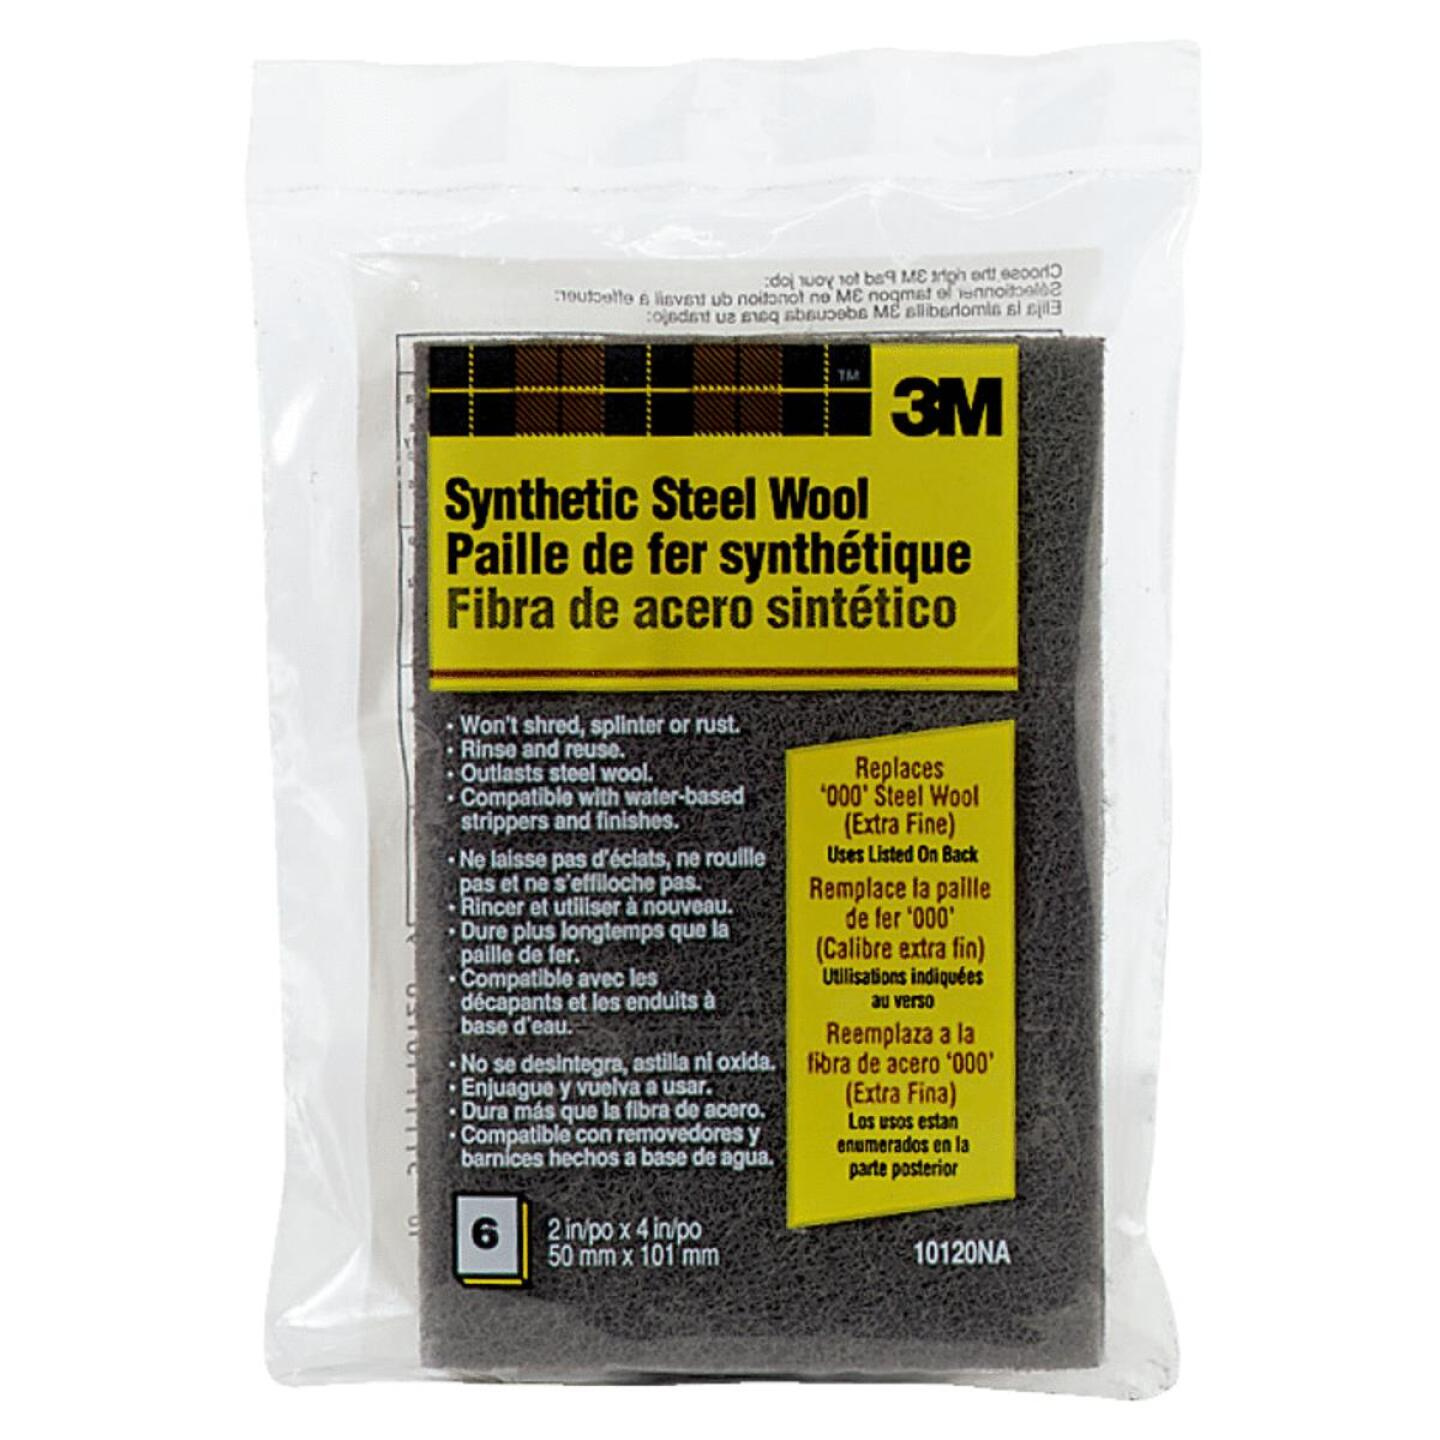 3M #000 Synthetic Steel Wool (6 Pack) Image 1